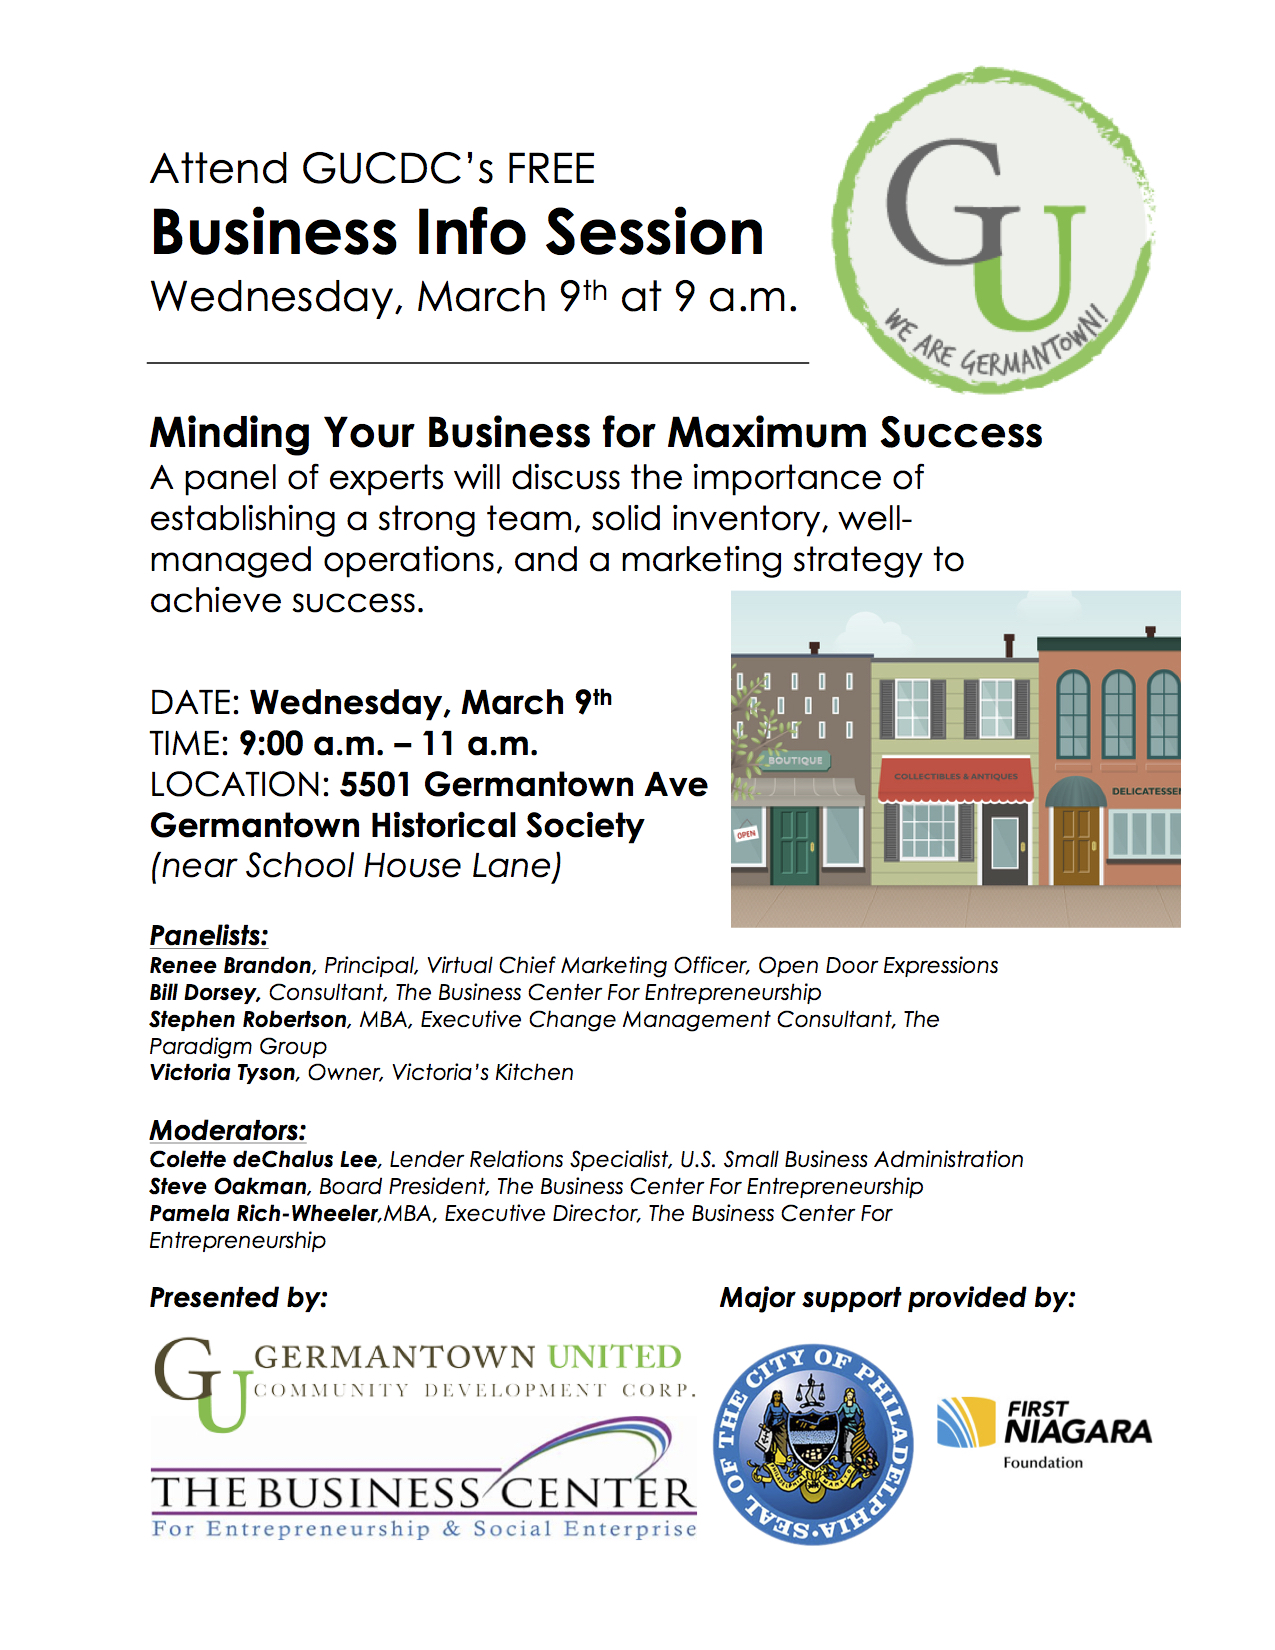 GUCDC-Business-Info-Session-03.09.2016-poster